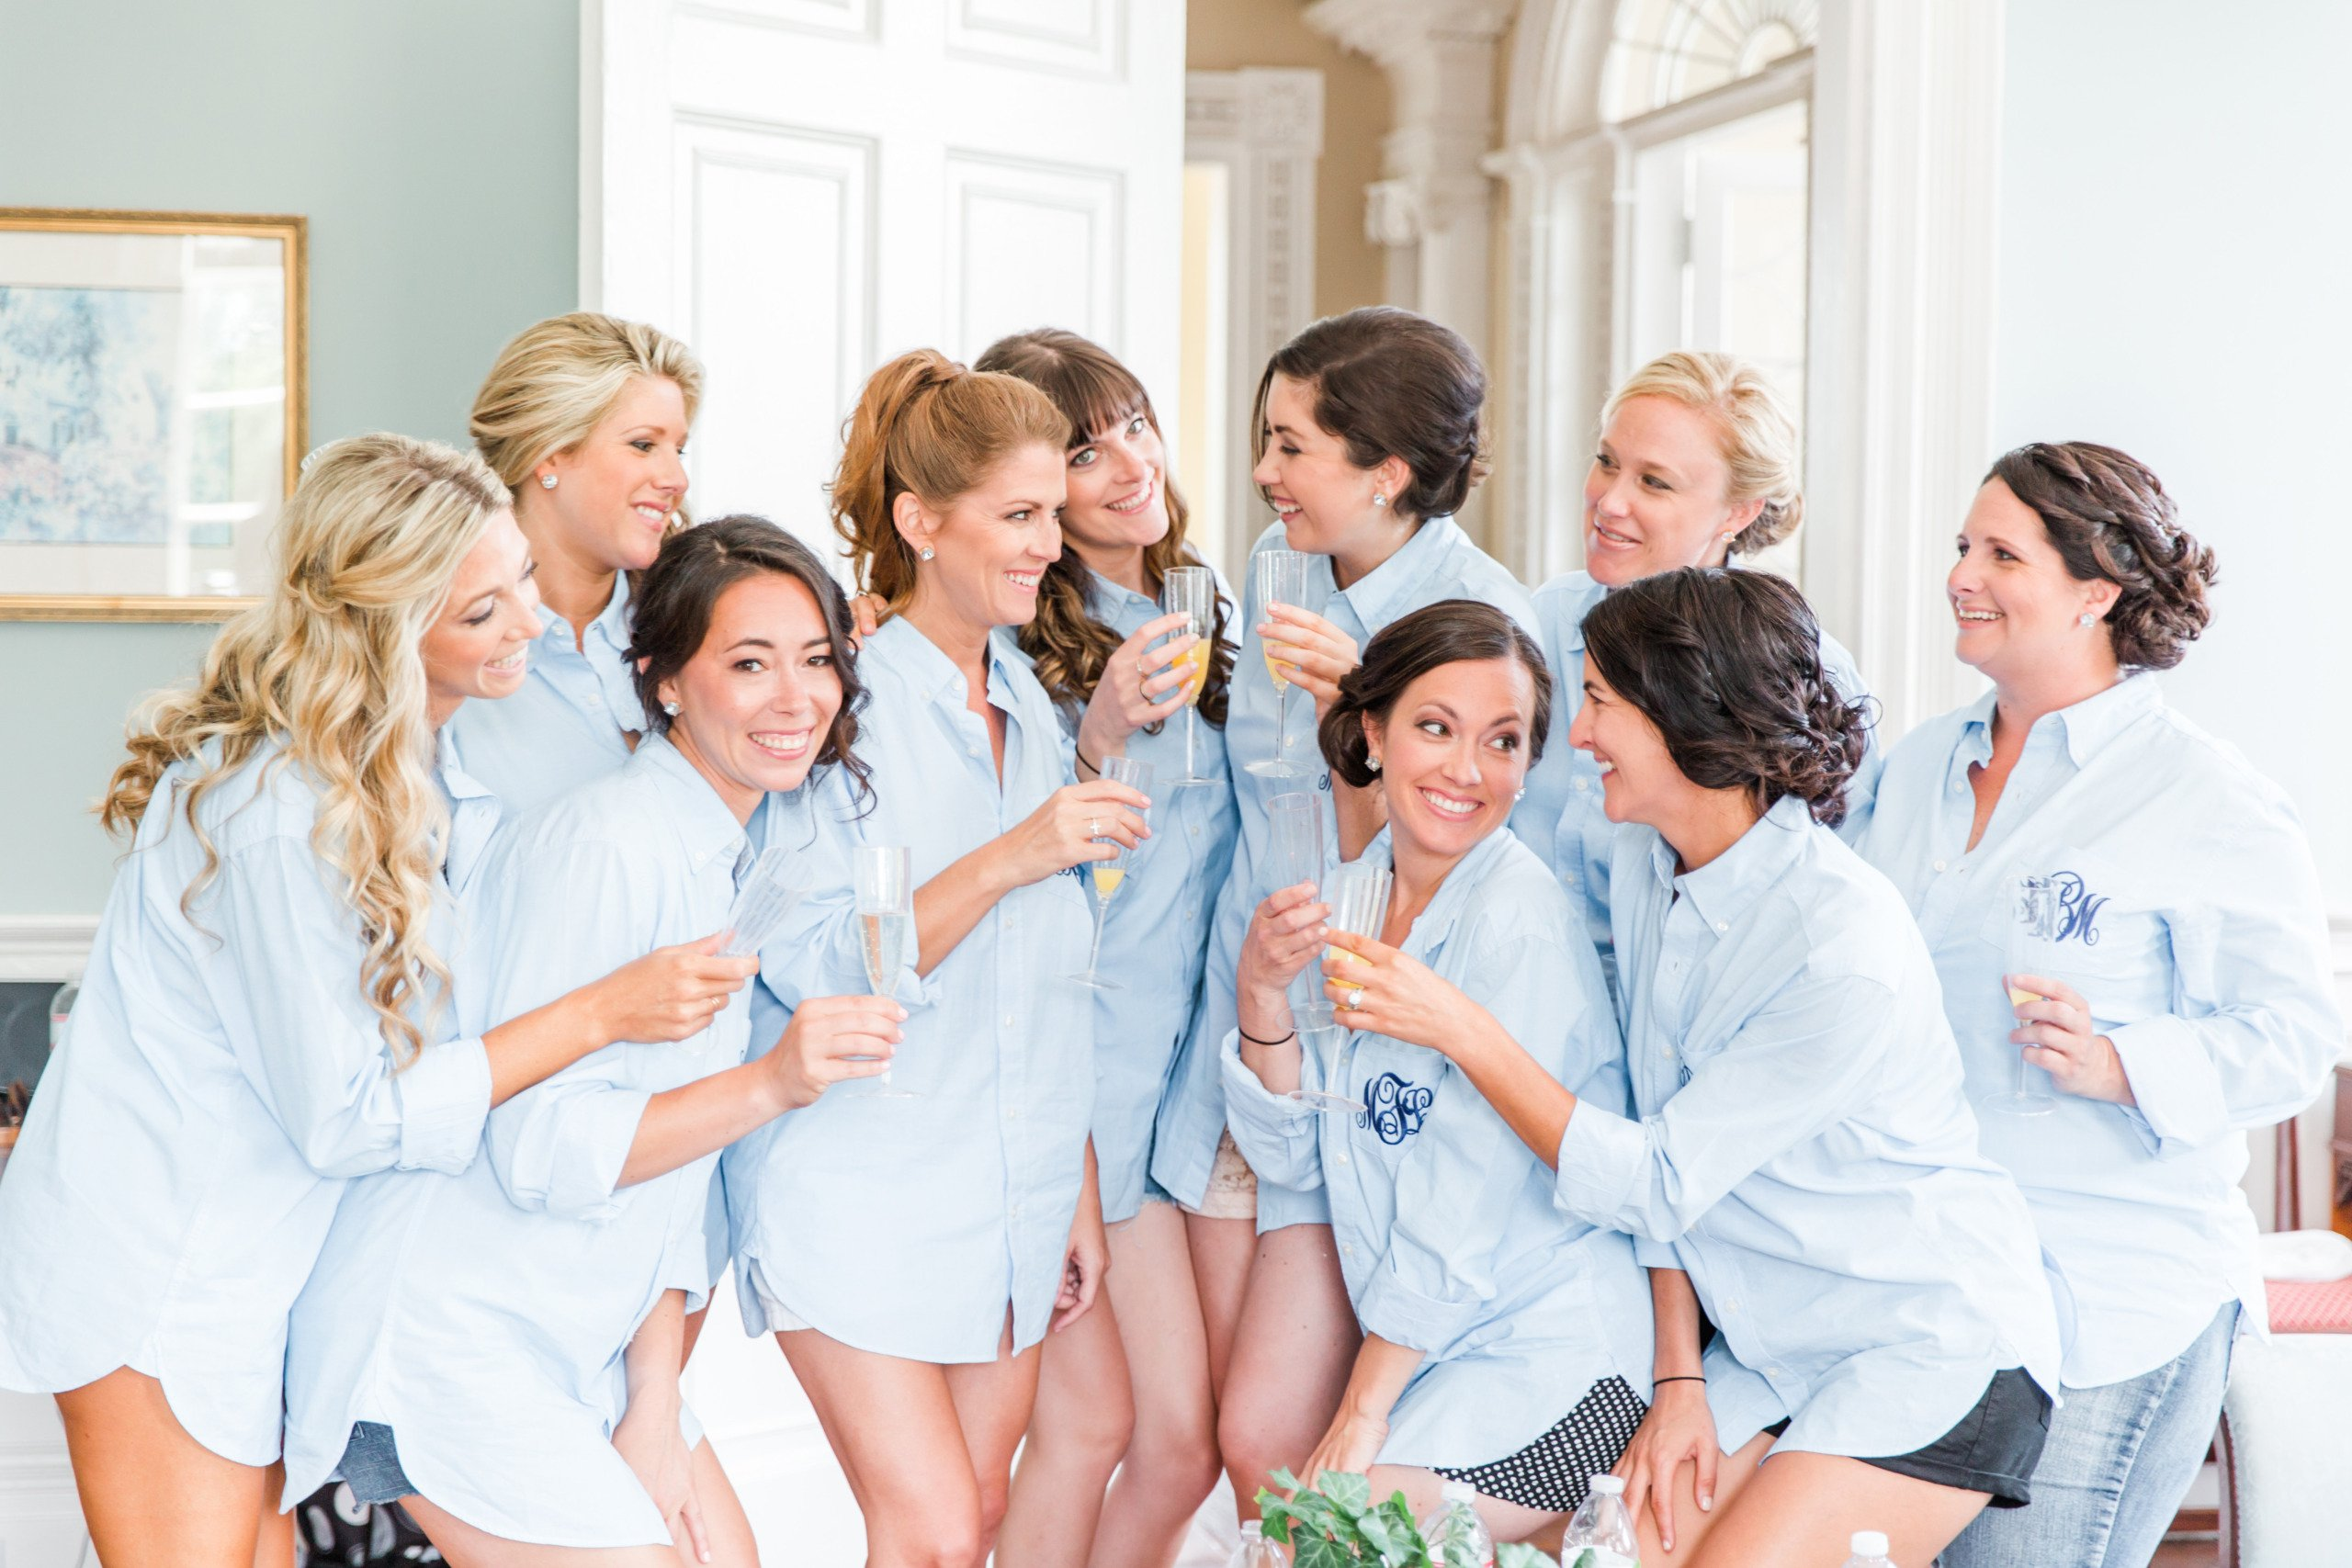 pajamas with monograms for wedding and bridesmaids